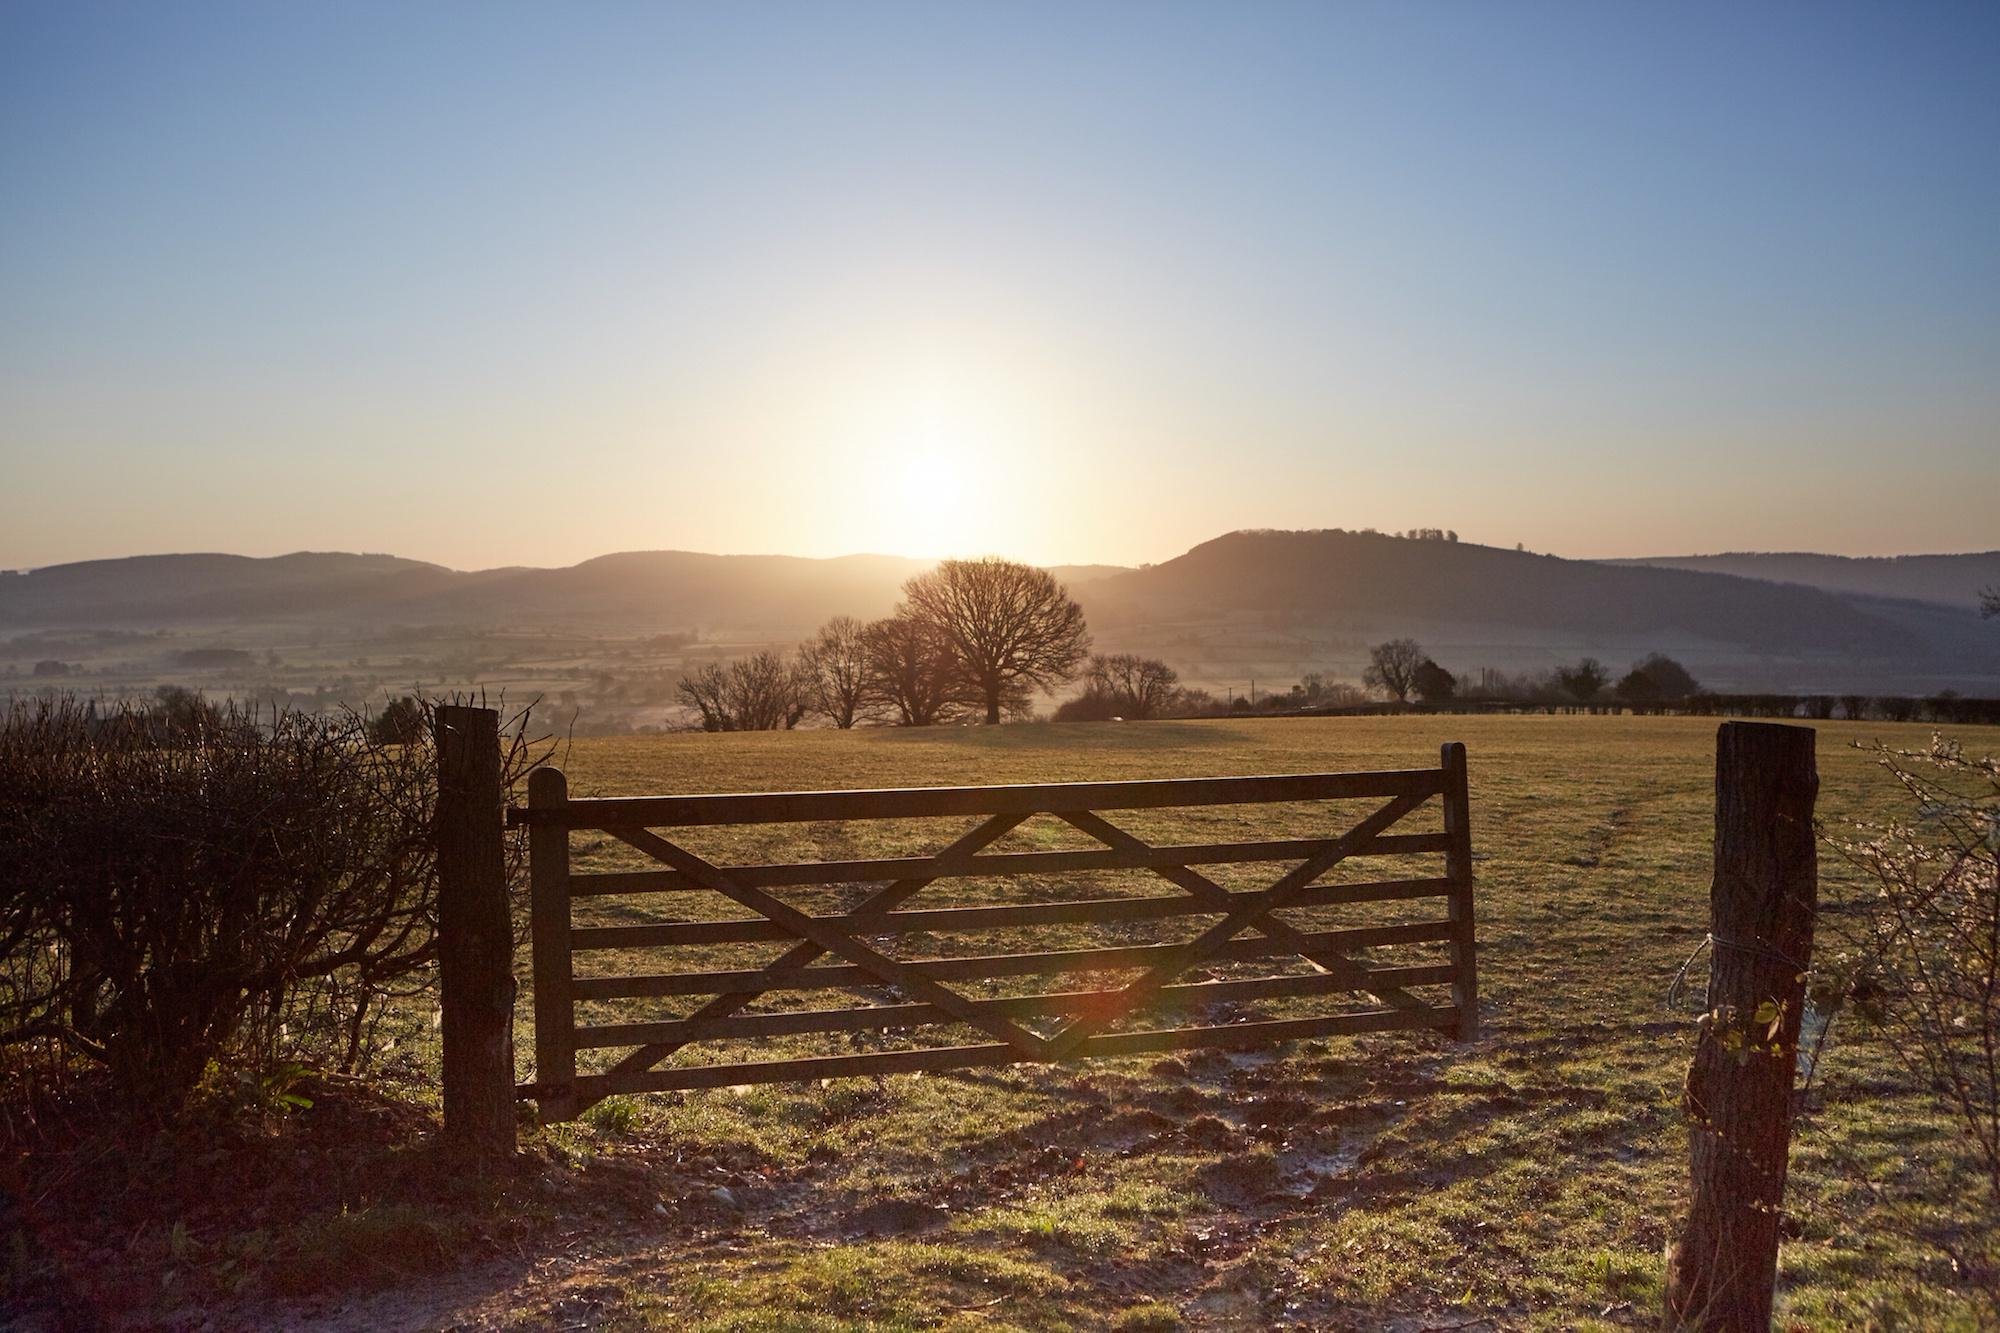 Hotels, Cottages, B&Bs & Glamping in the West Midlands